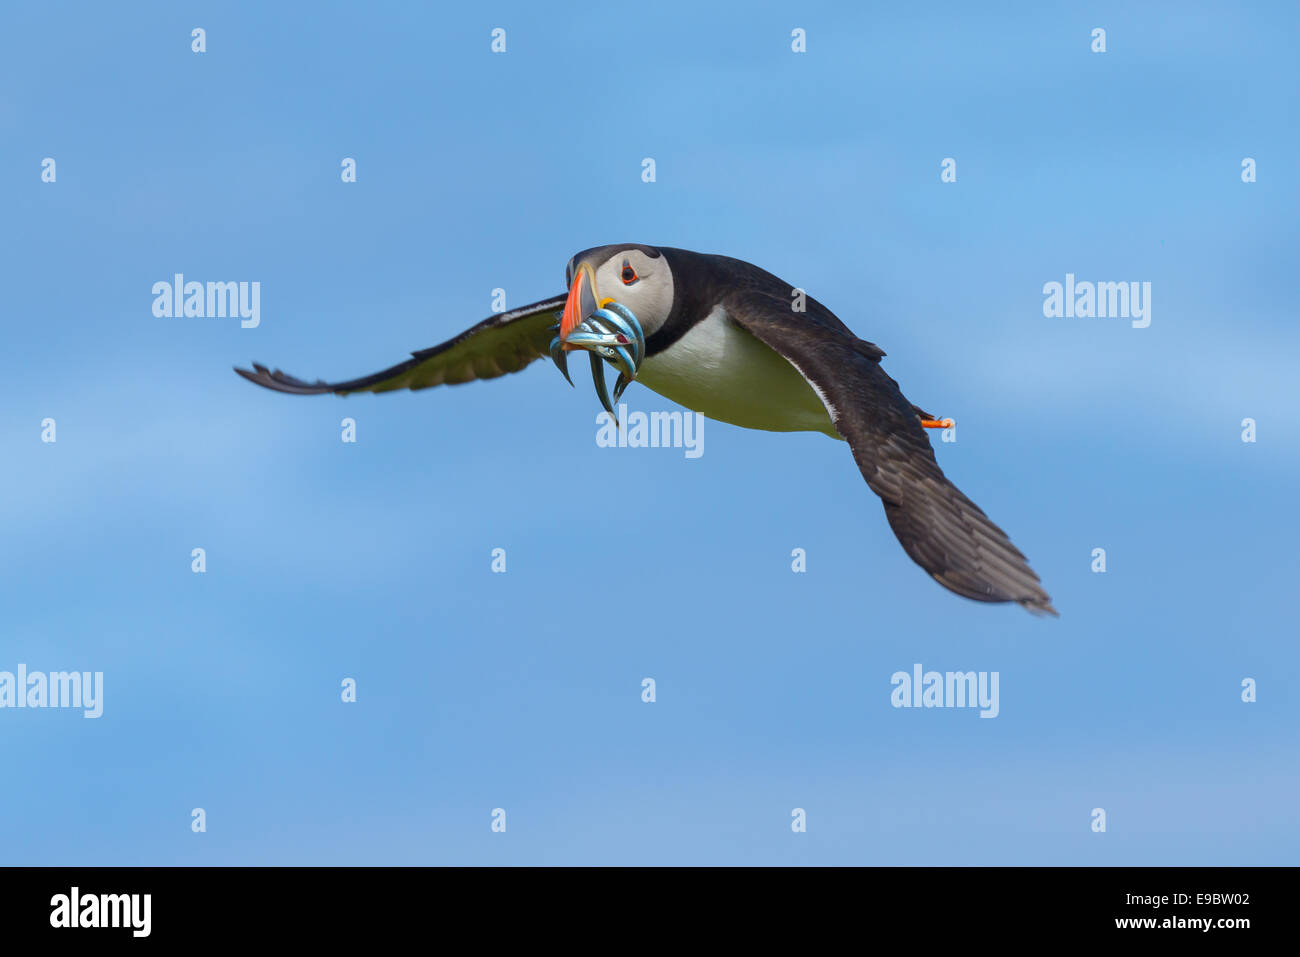 Atlantic Puffin (Fratercula arctica) flying with a beakful of sand-eels, its normal natural diet. British birdlife. Stock Photo